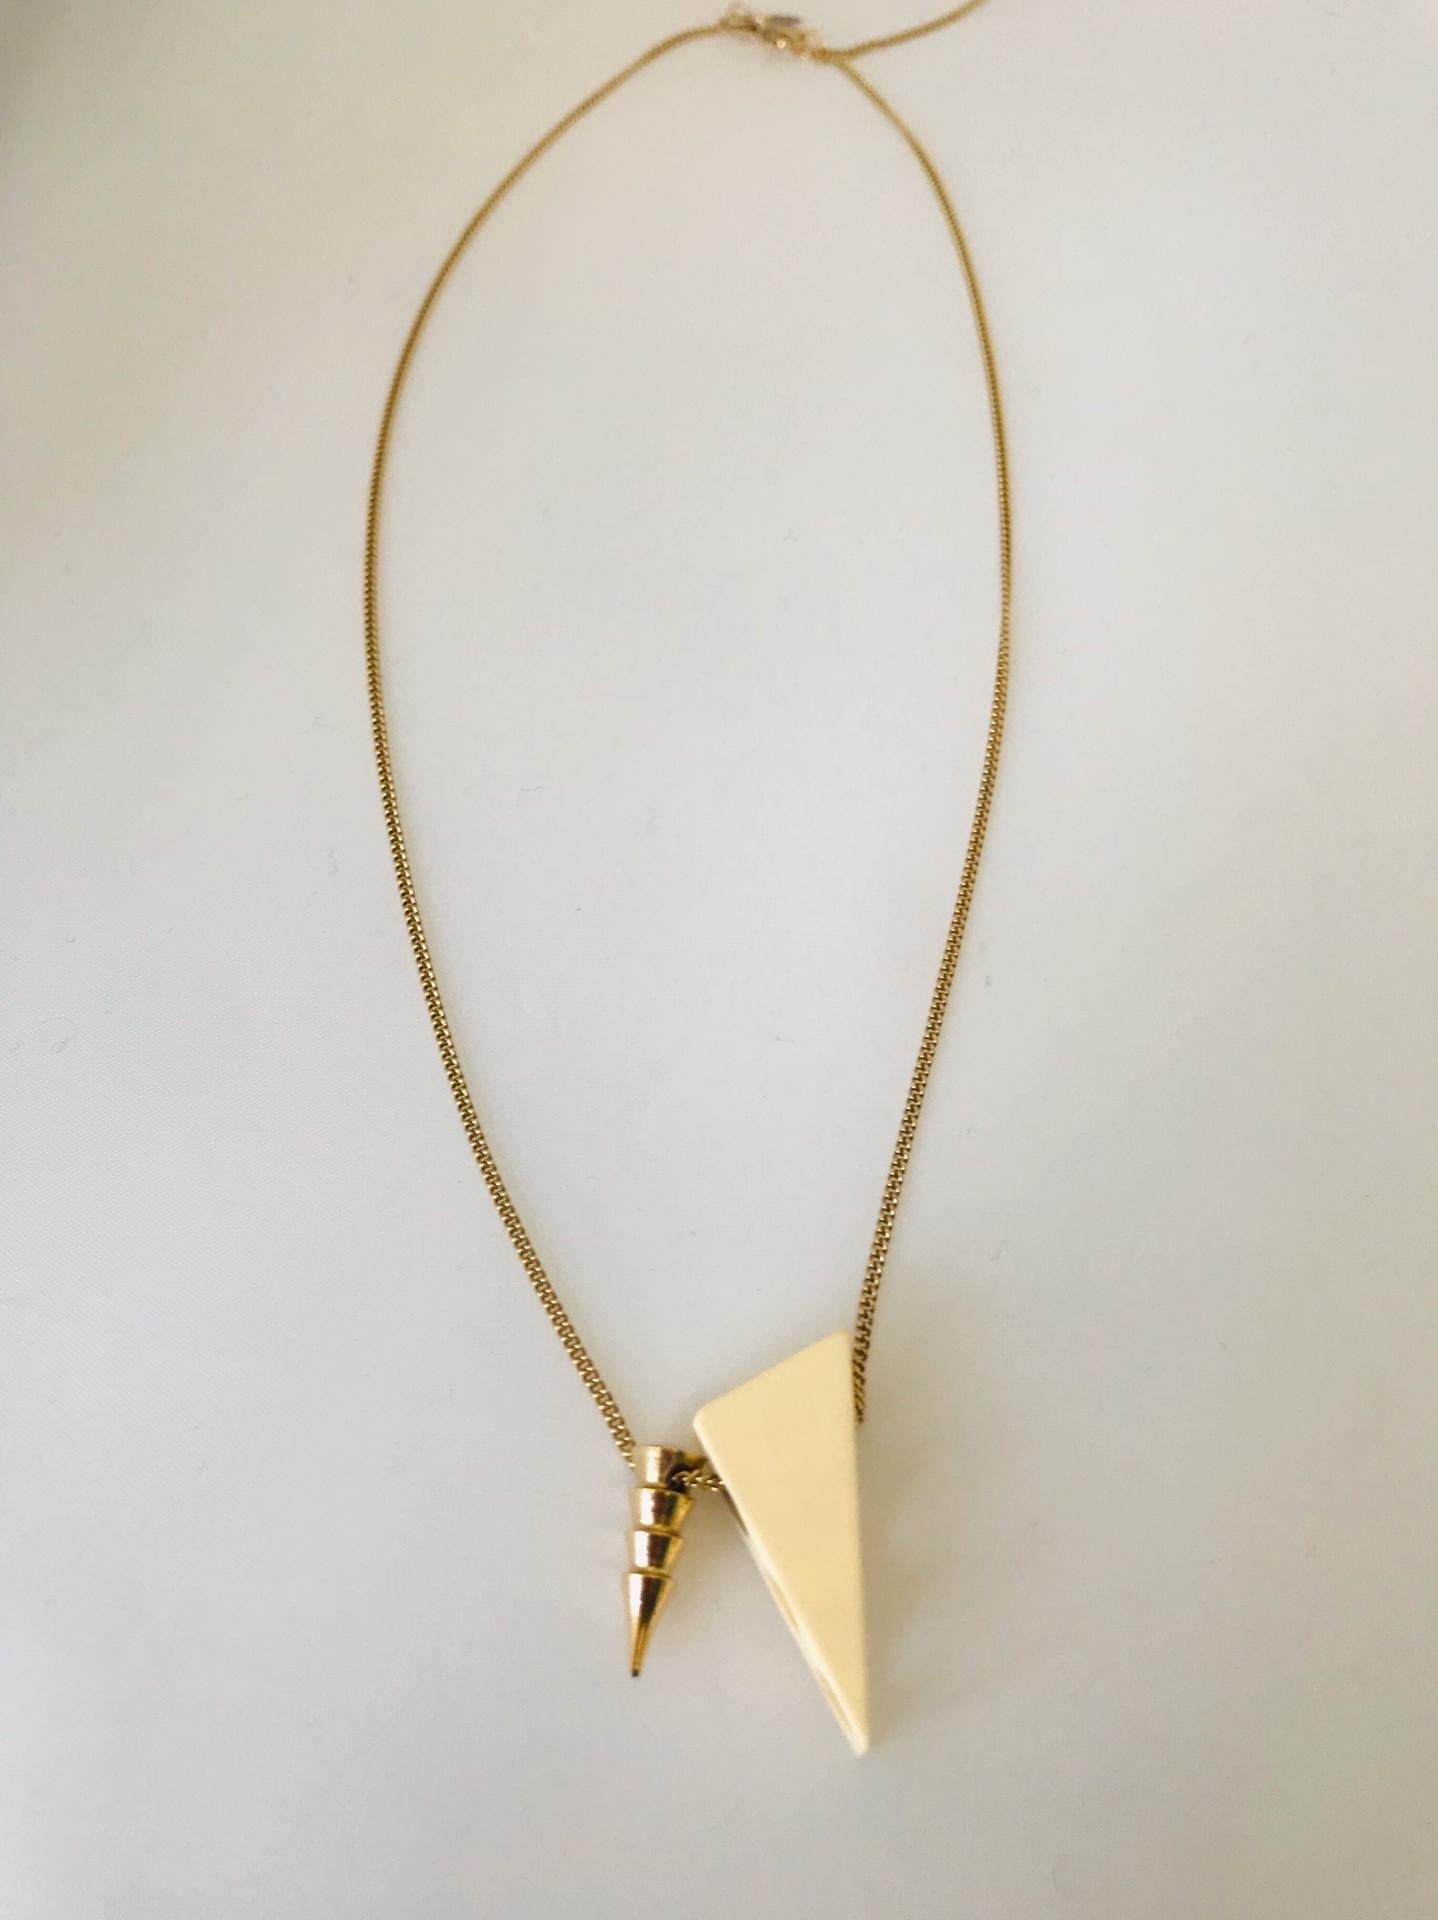 Wouters & Hendrix - gold plated pendant necklace with white perspex